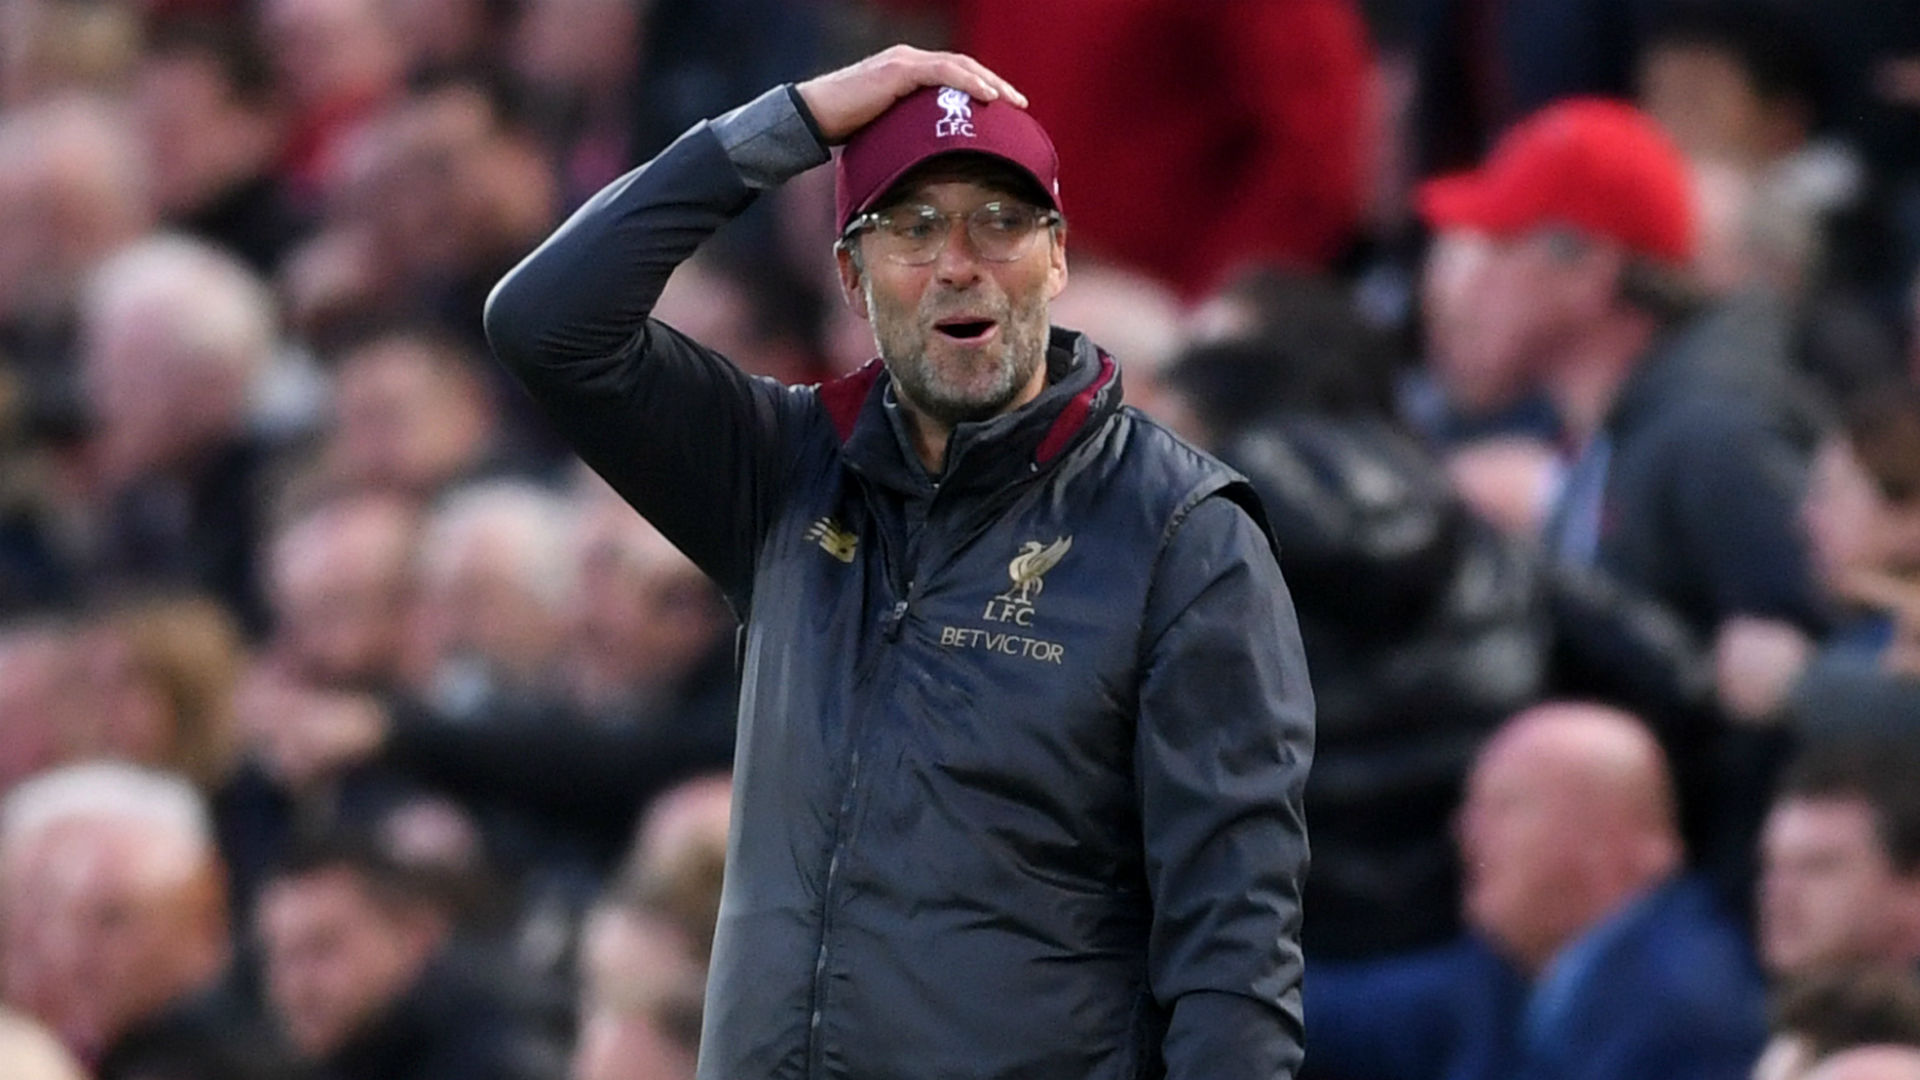 Group C will stay exciting for Liverpool, says Klopp